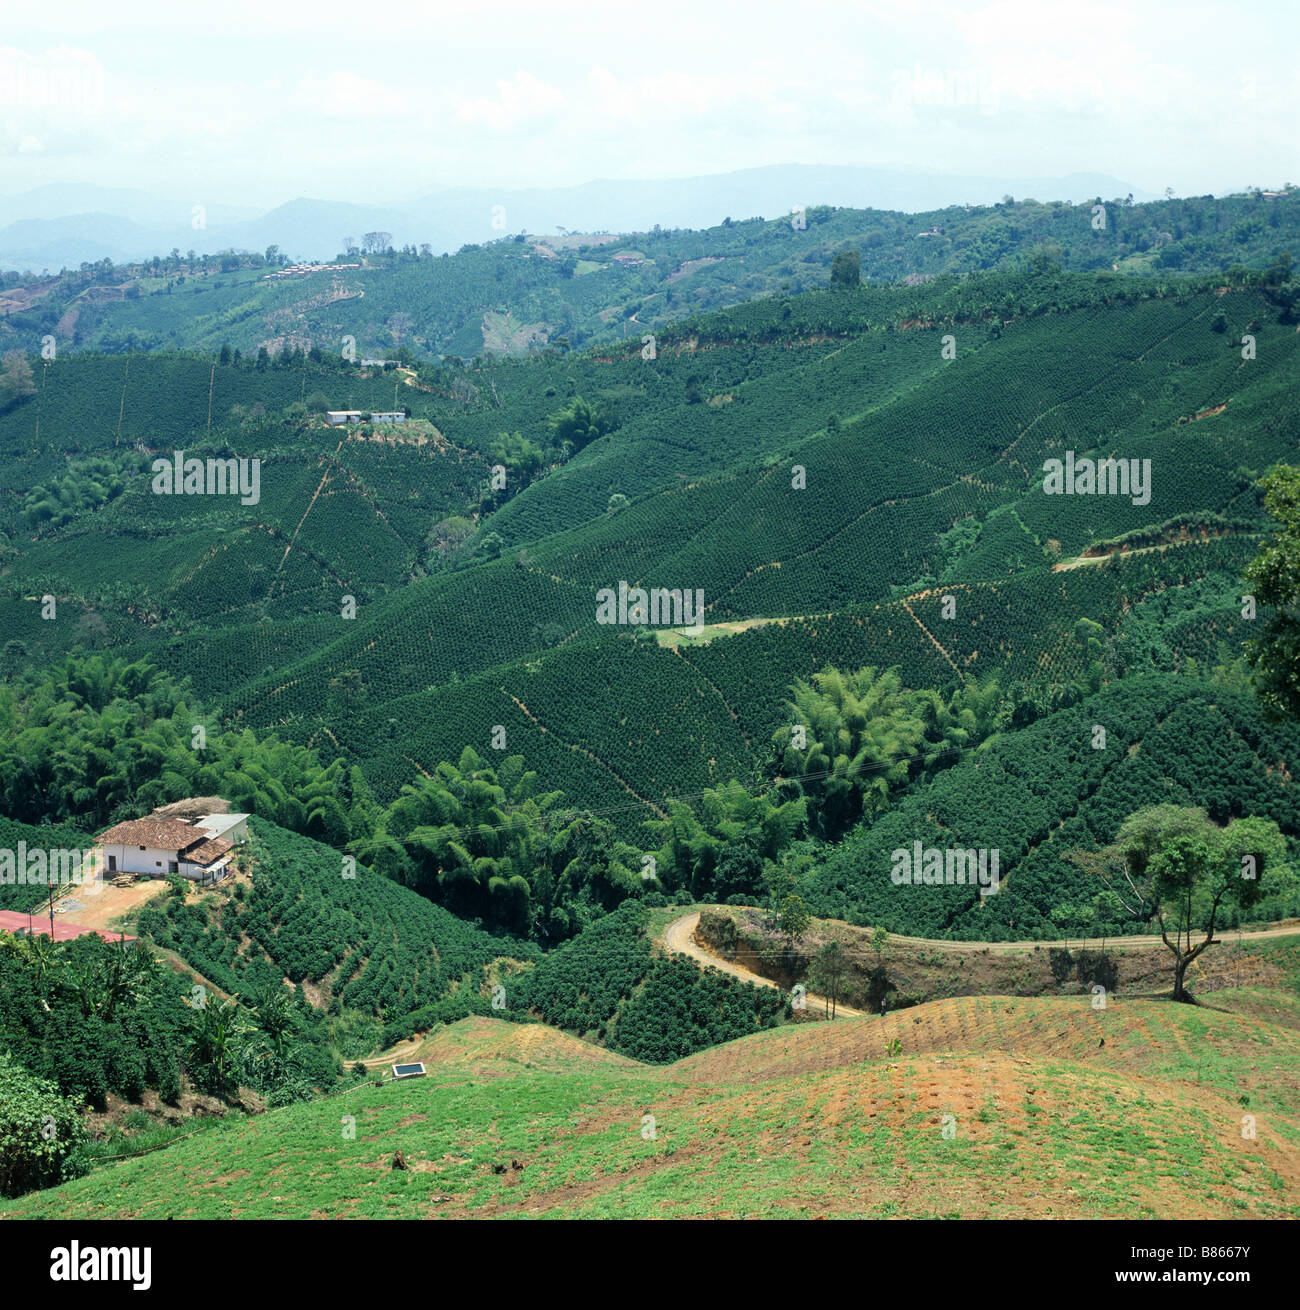 Lowland coffee plantations without shade trees in Colombia South America - Stock Image